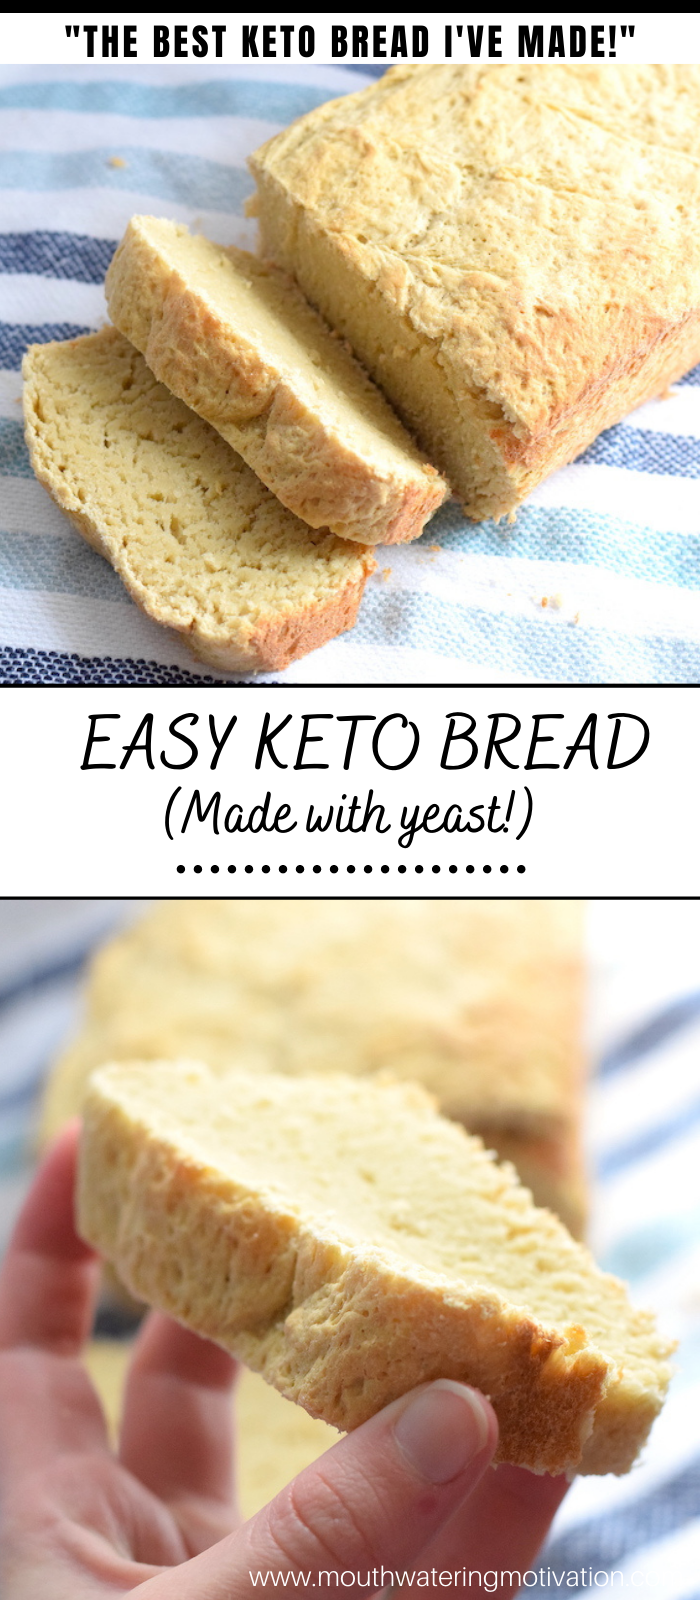 easy keto bread made with yeast